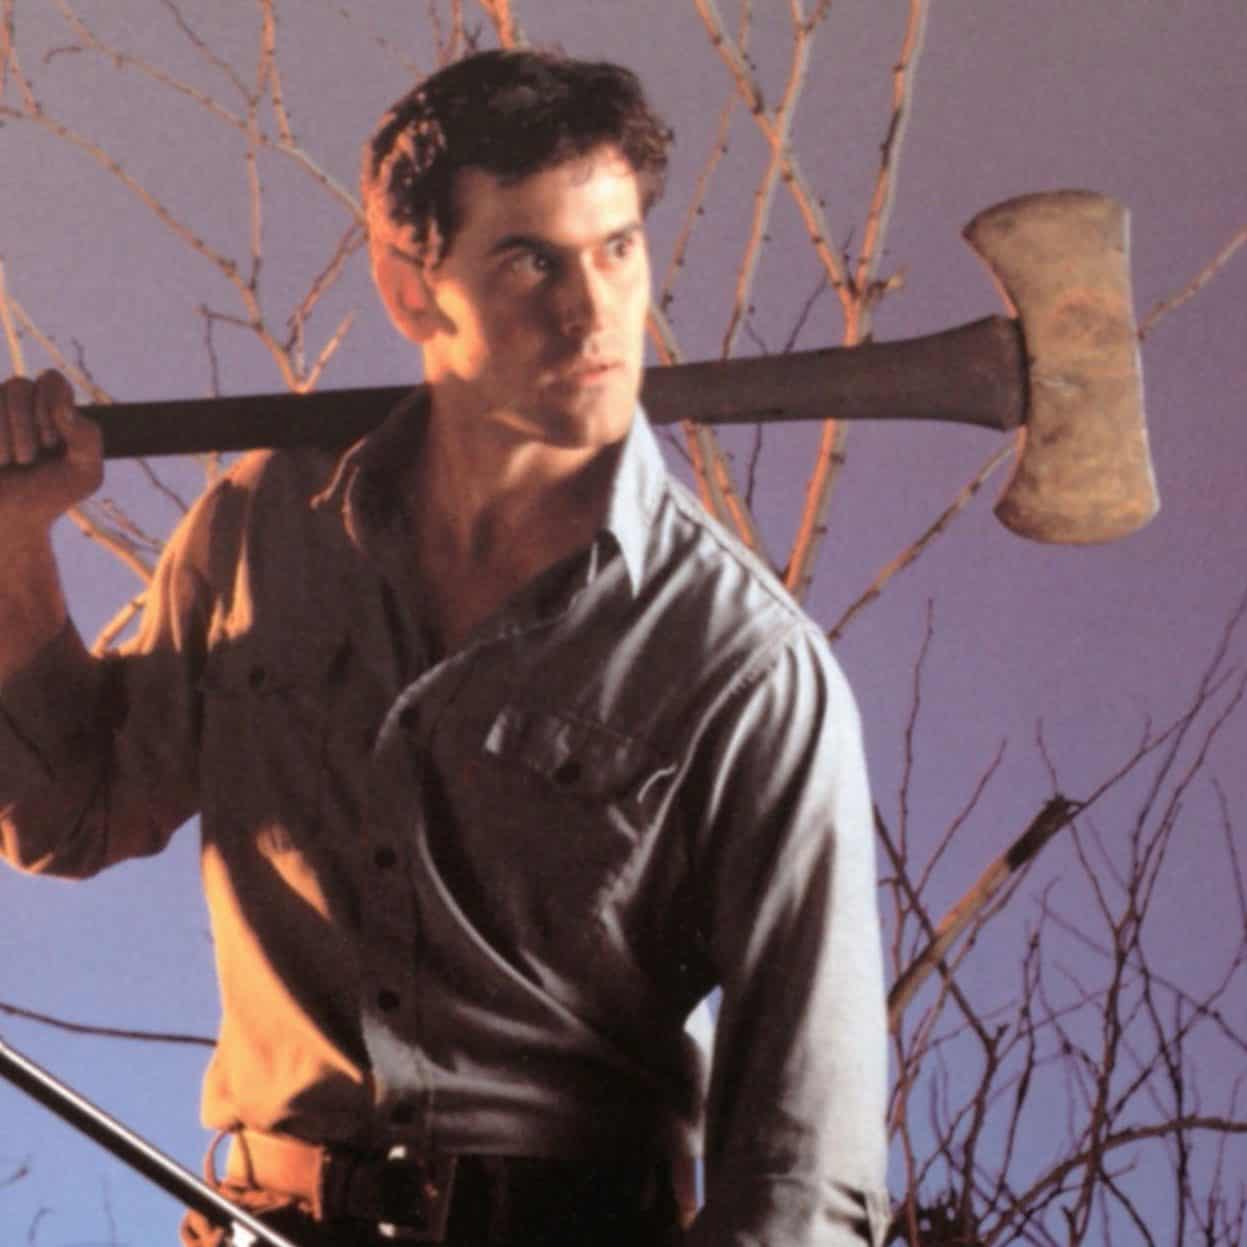 Bruce Campbell as Ash WIlliams in Evil Dead e1571843571514 Bruce Campbell's Plastic Surgery and 19 Other Things You Didn't Know About Army of Darkness